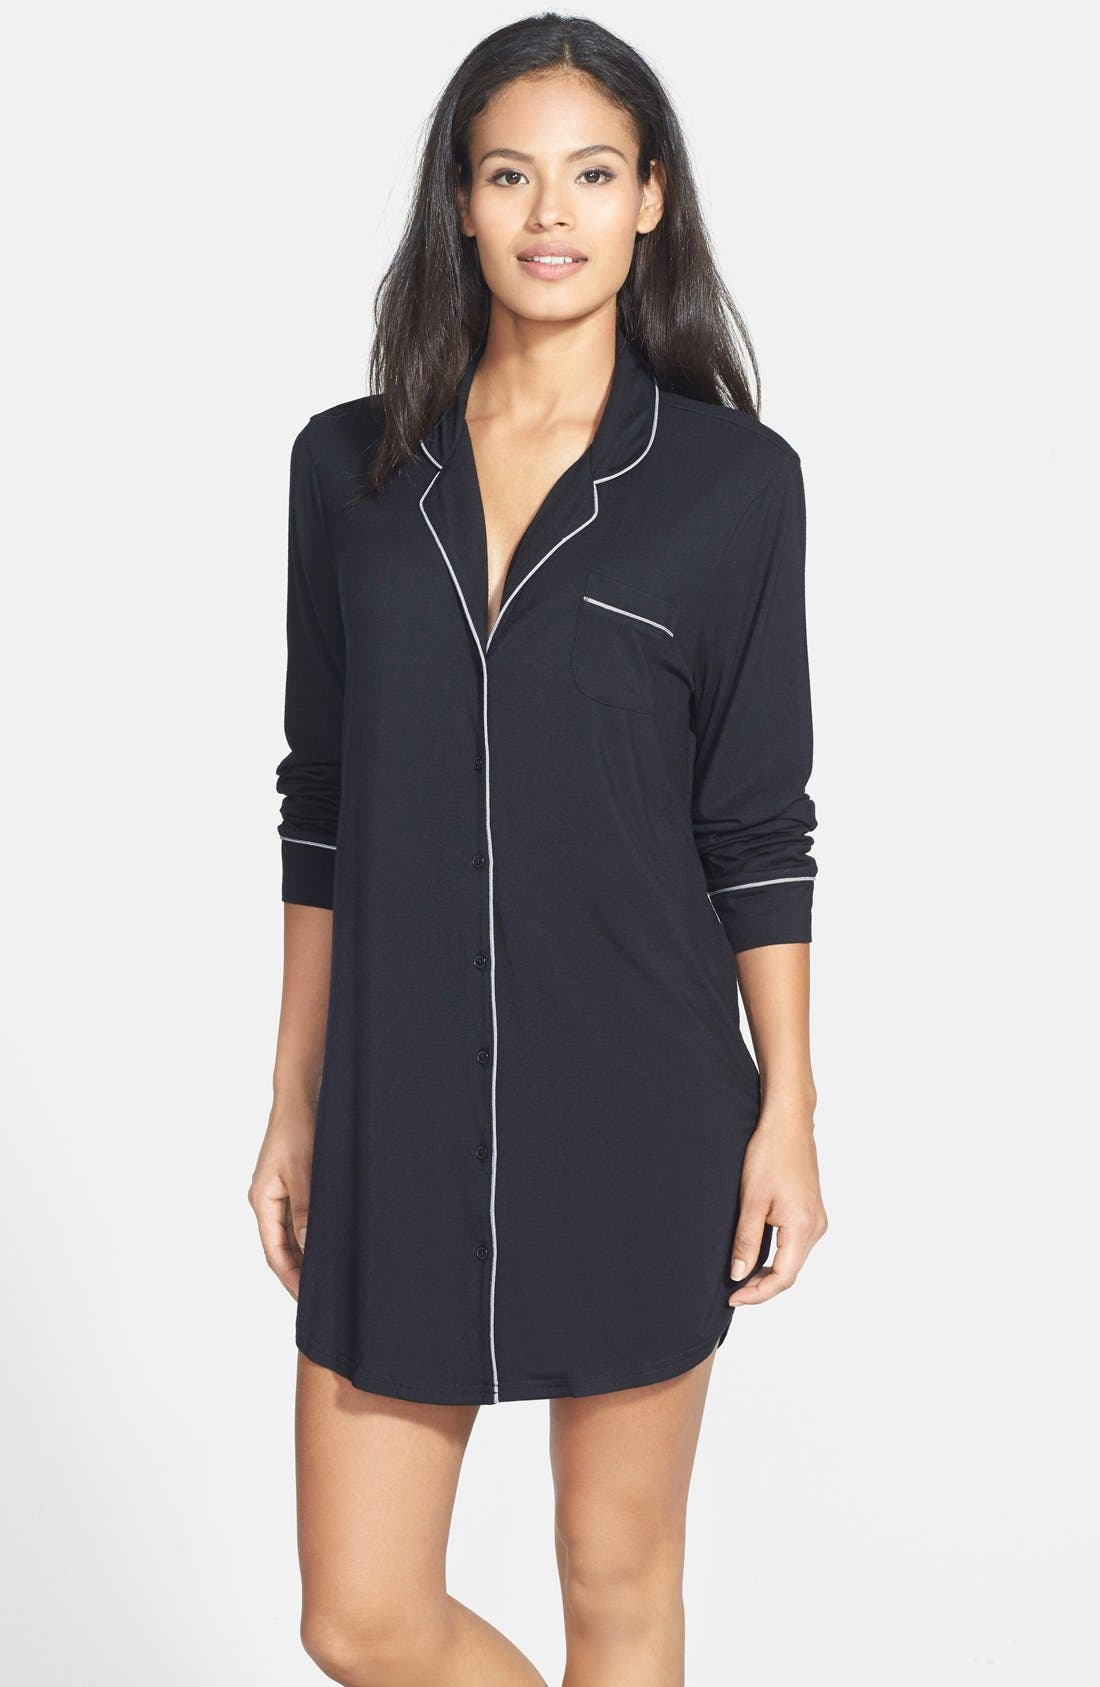 Nordstrom Lingerie 'Moonlight' Nightshirt